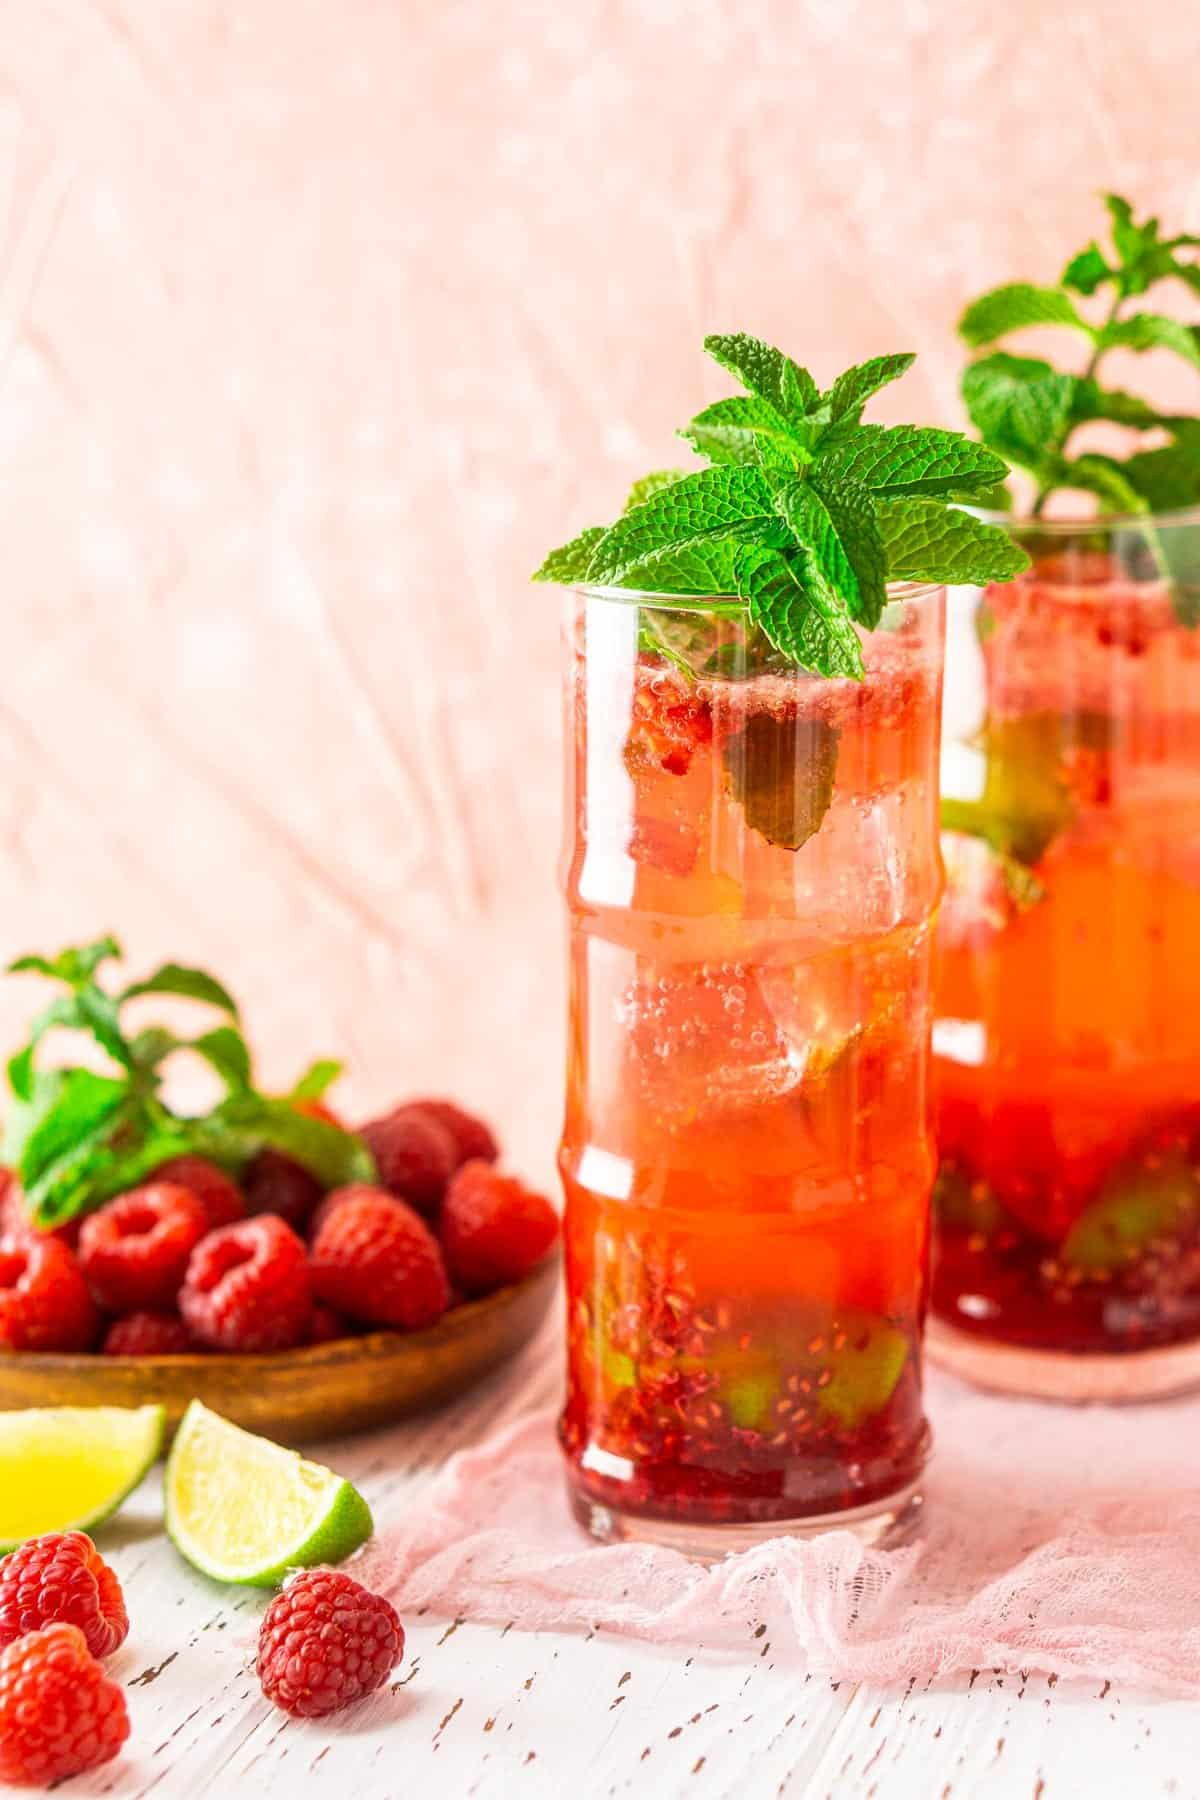 Two raspberry mojitos with a plate of raspberries and lime slices on the side.